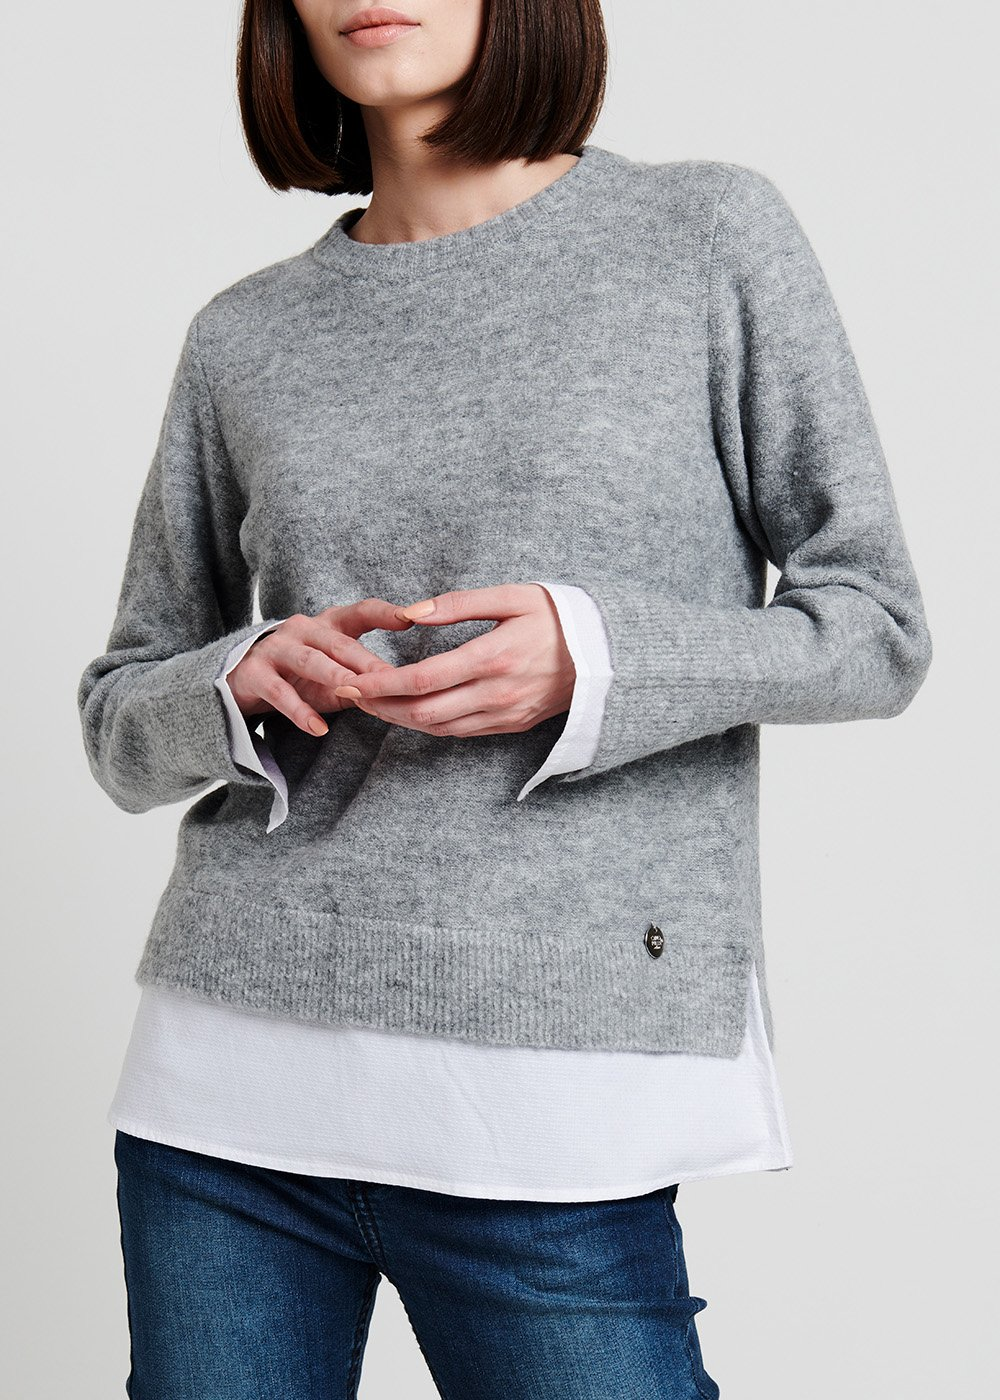 Crewneck melange grey sweater - Medium Grey - Woman